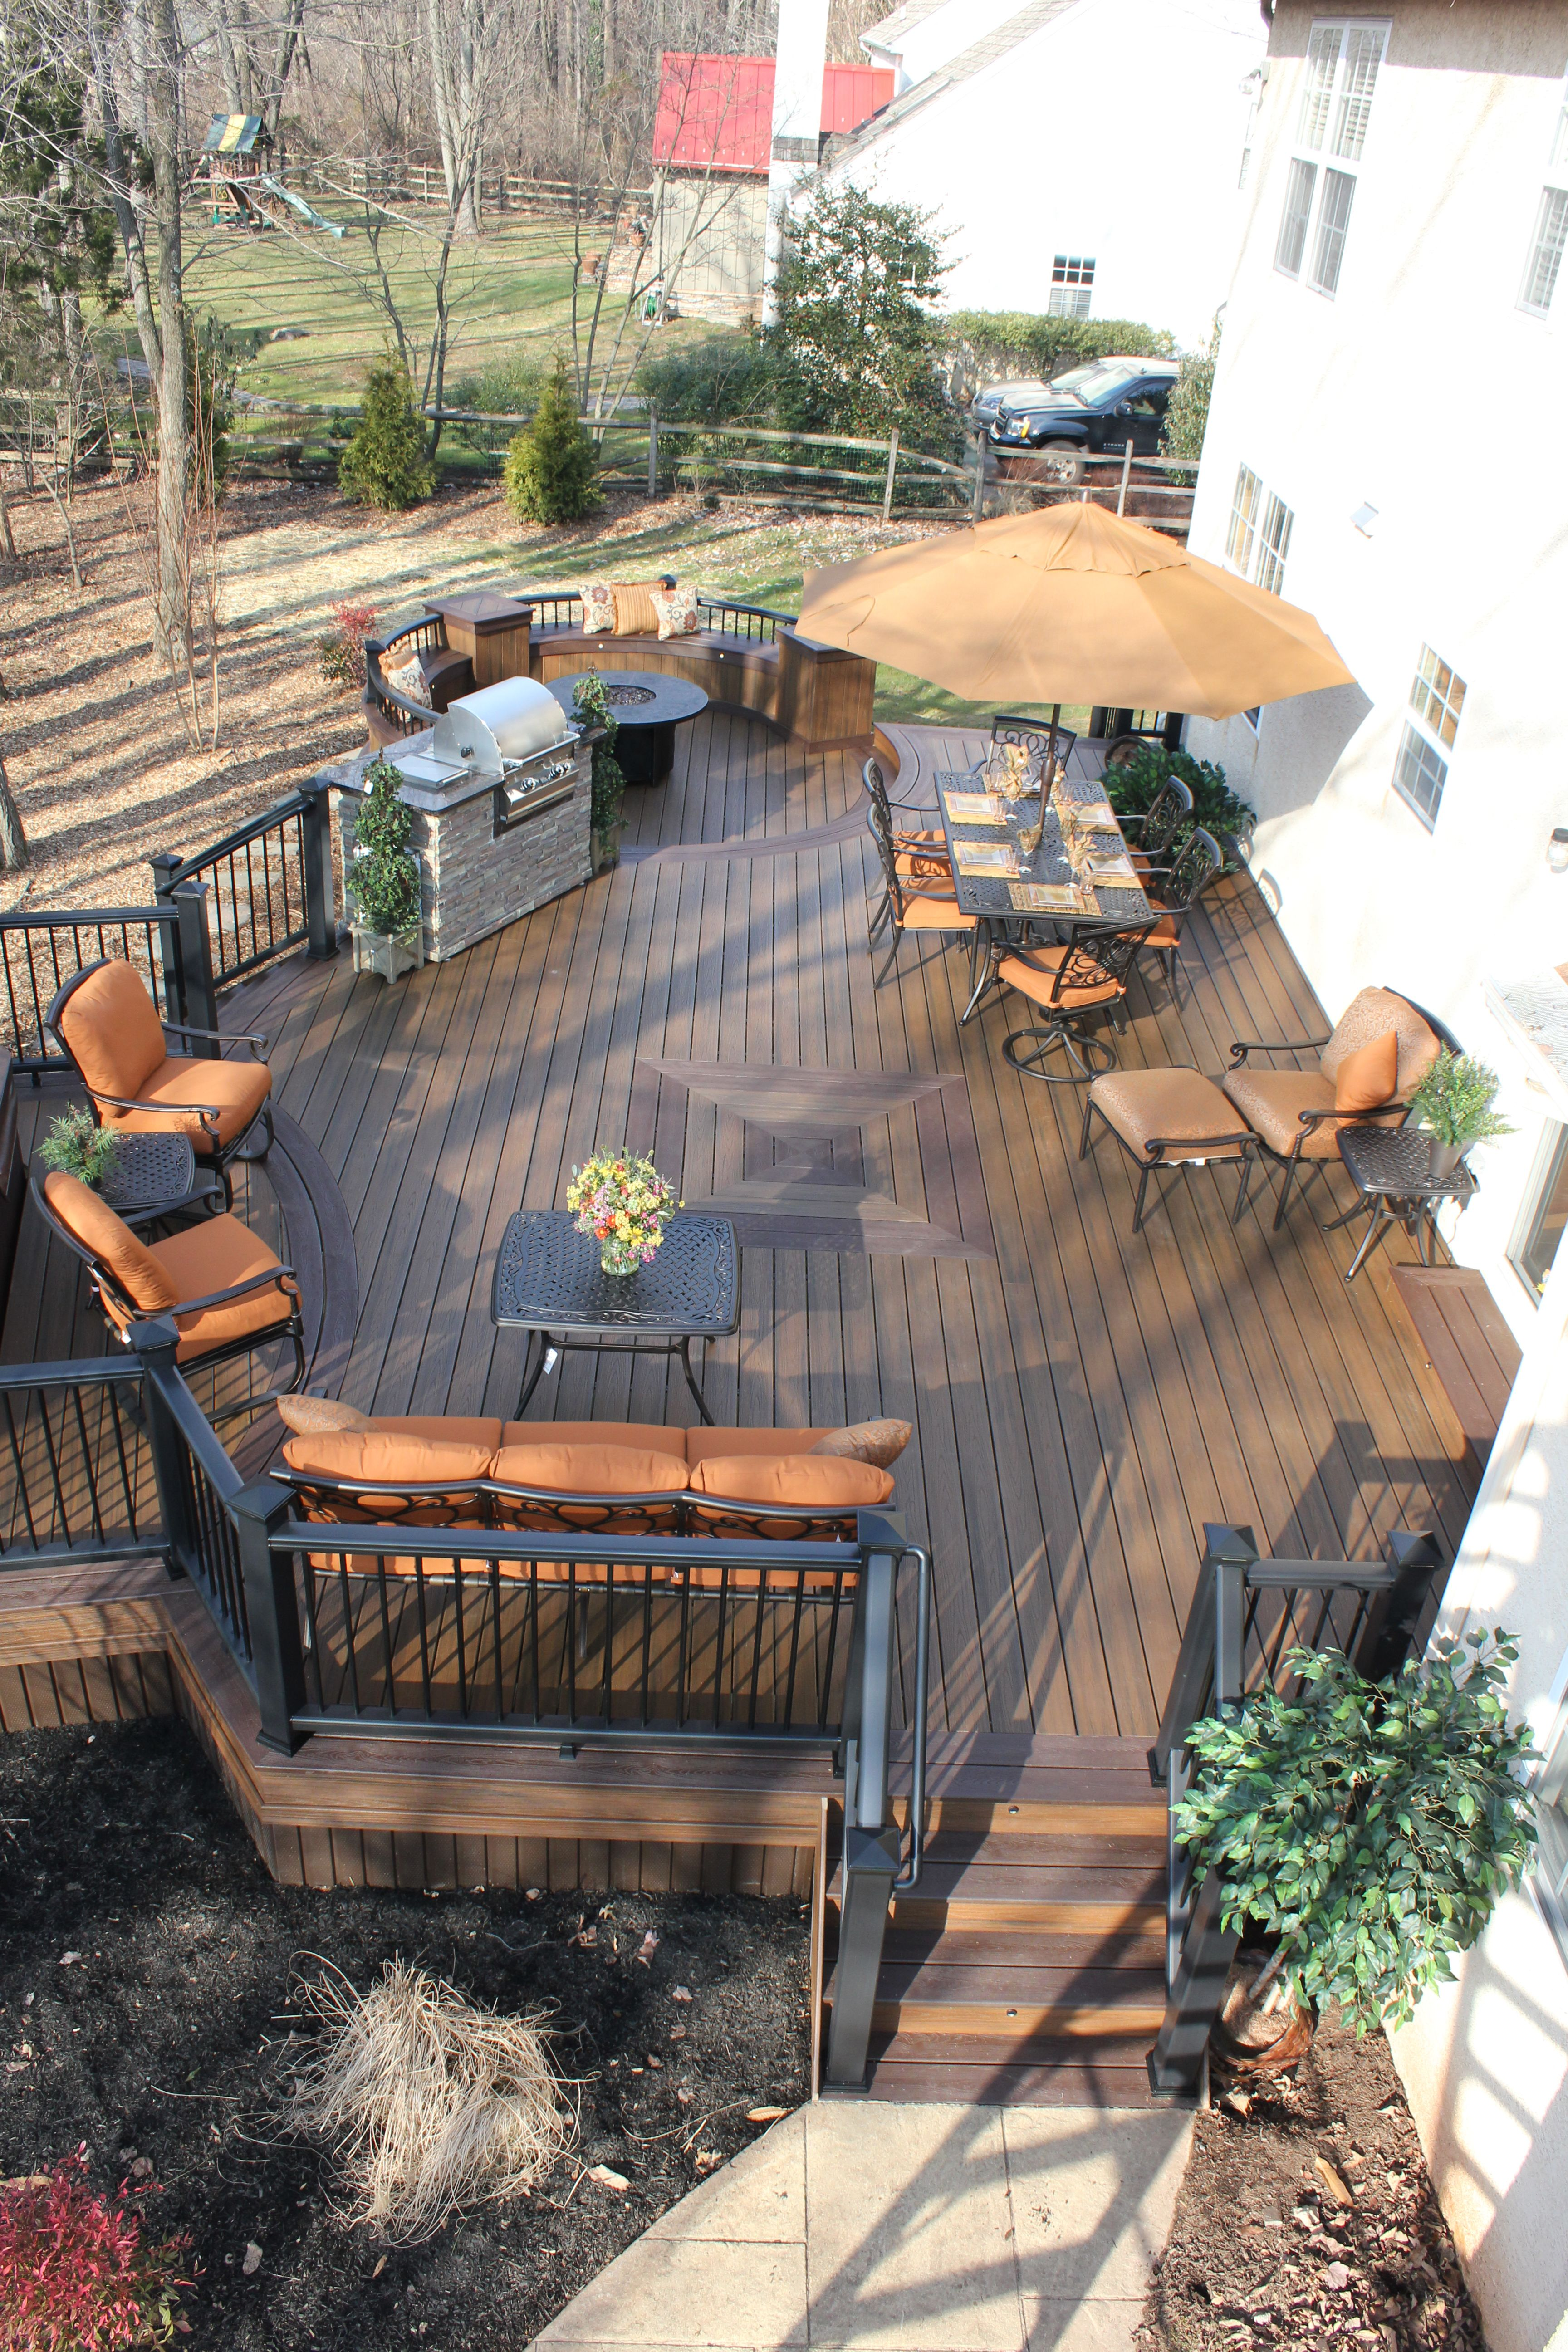 Trex Transcend Tropics Deck With Hot Tub Area And A